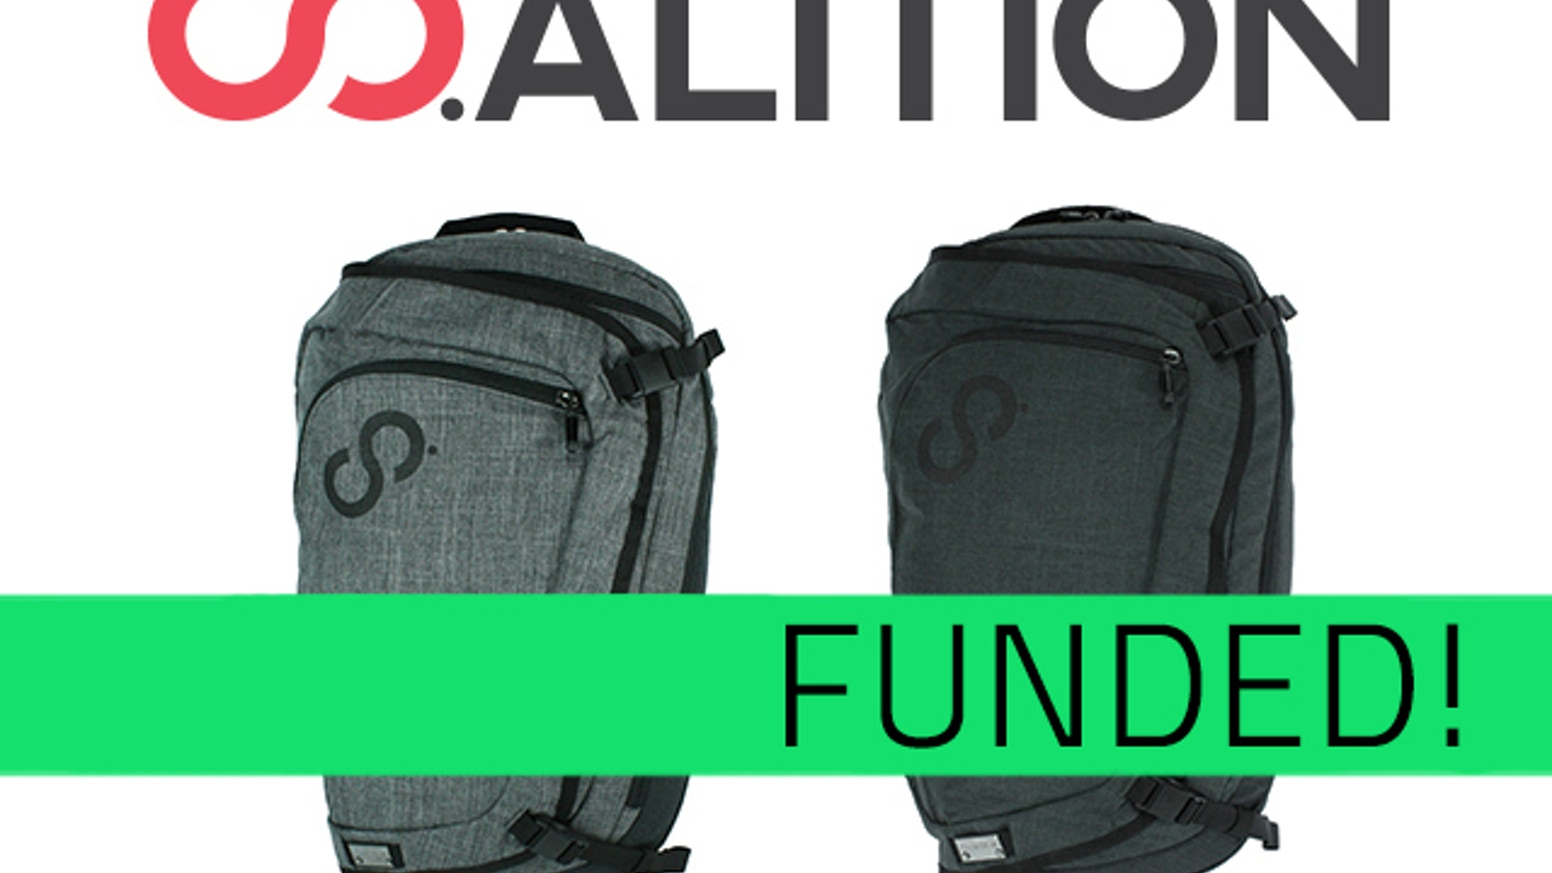 Urban backpack integrated with COMPUTERIZED POWER SUPPLY & WIRELESS MOBILE STORAGE to charge devices & access/store files on-the-go. www.co-alition.com